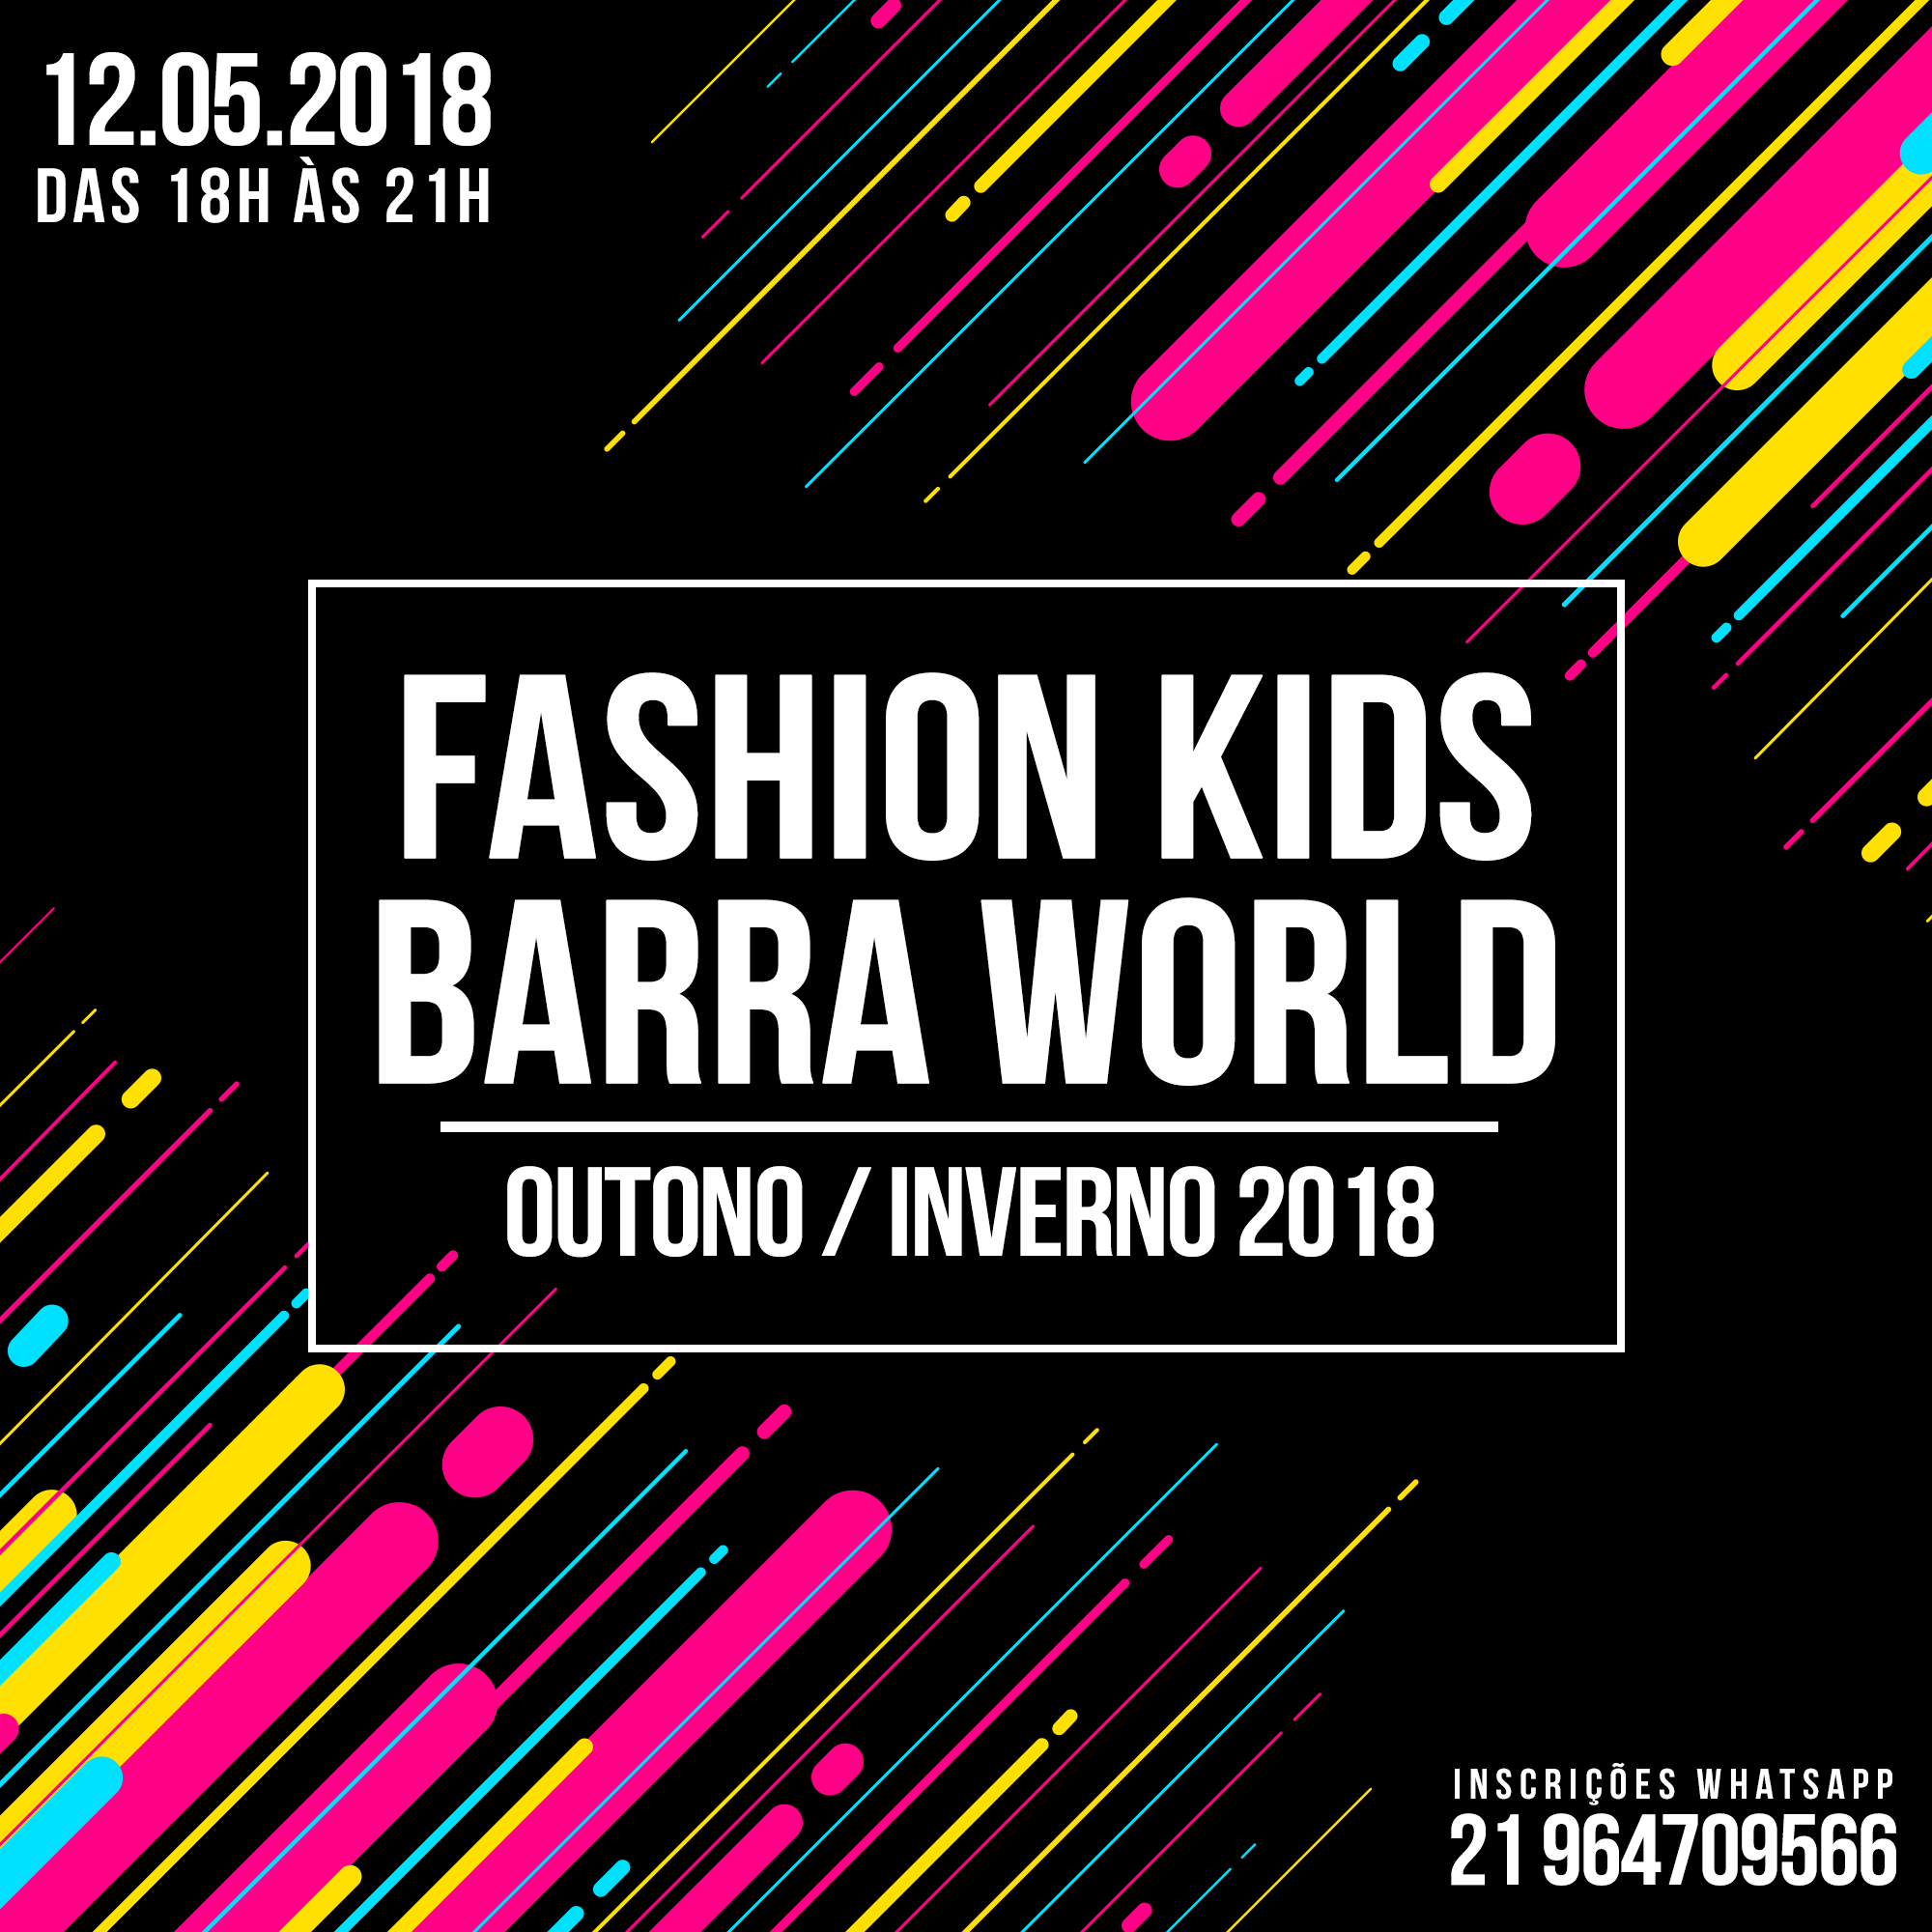 Fashion Kids Barra World